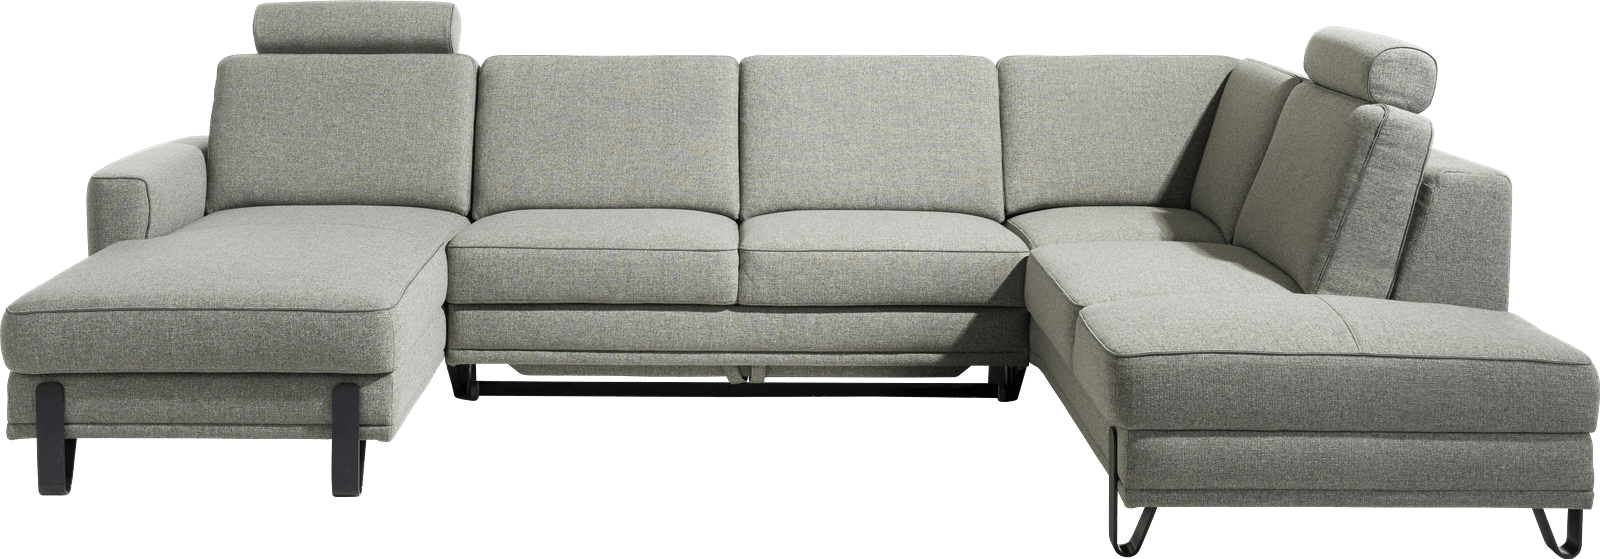 XOOON - Denver - Sofas - Longchair links - 2,5 Sitzer - Ottomane rechts